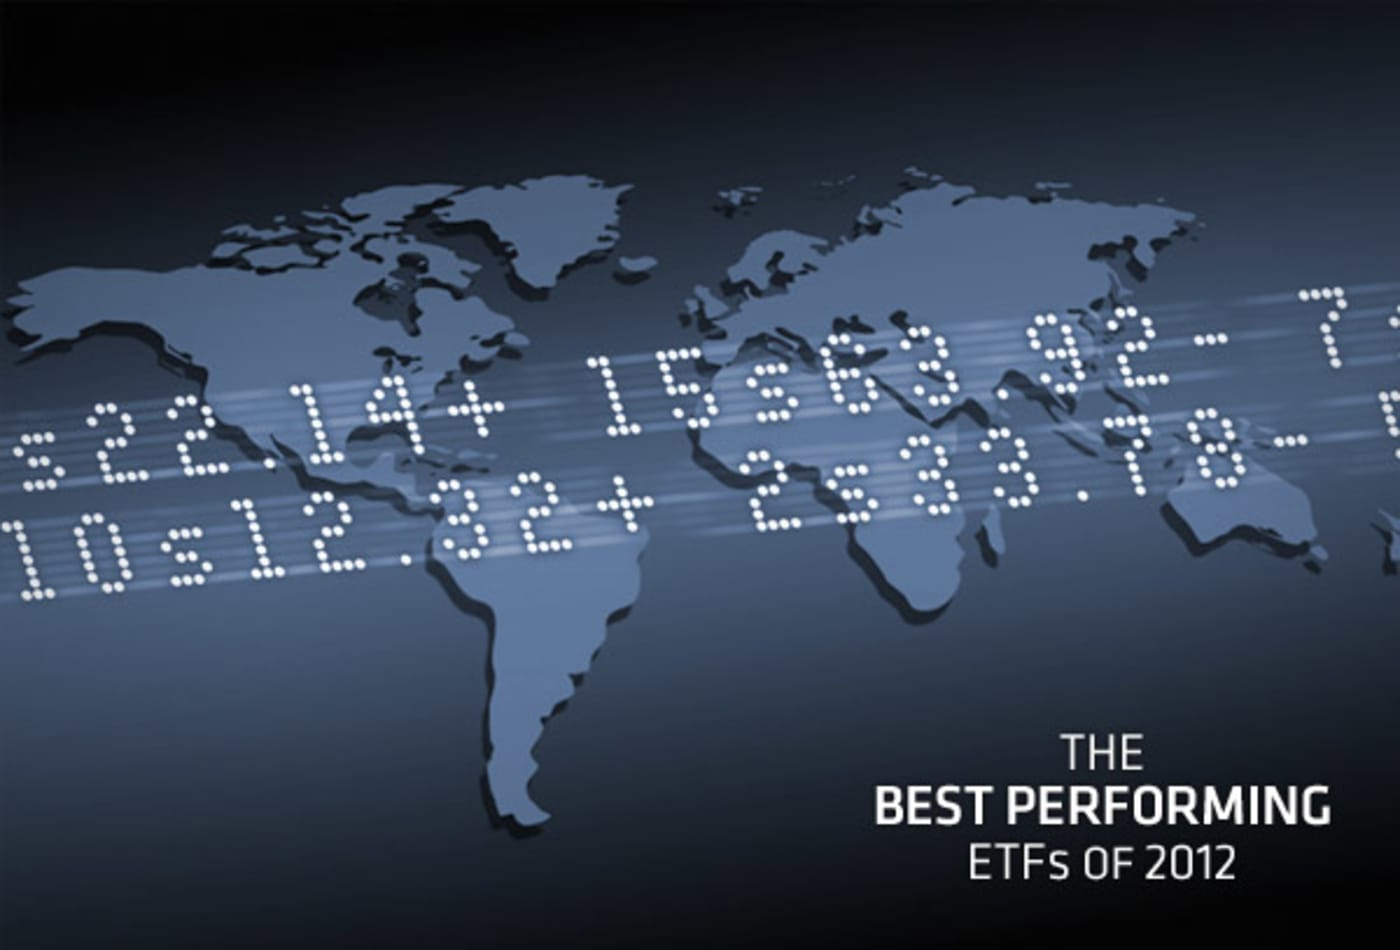 Best-performing-ETF-2012-cover.jpg